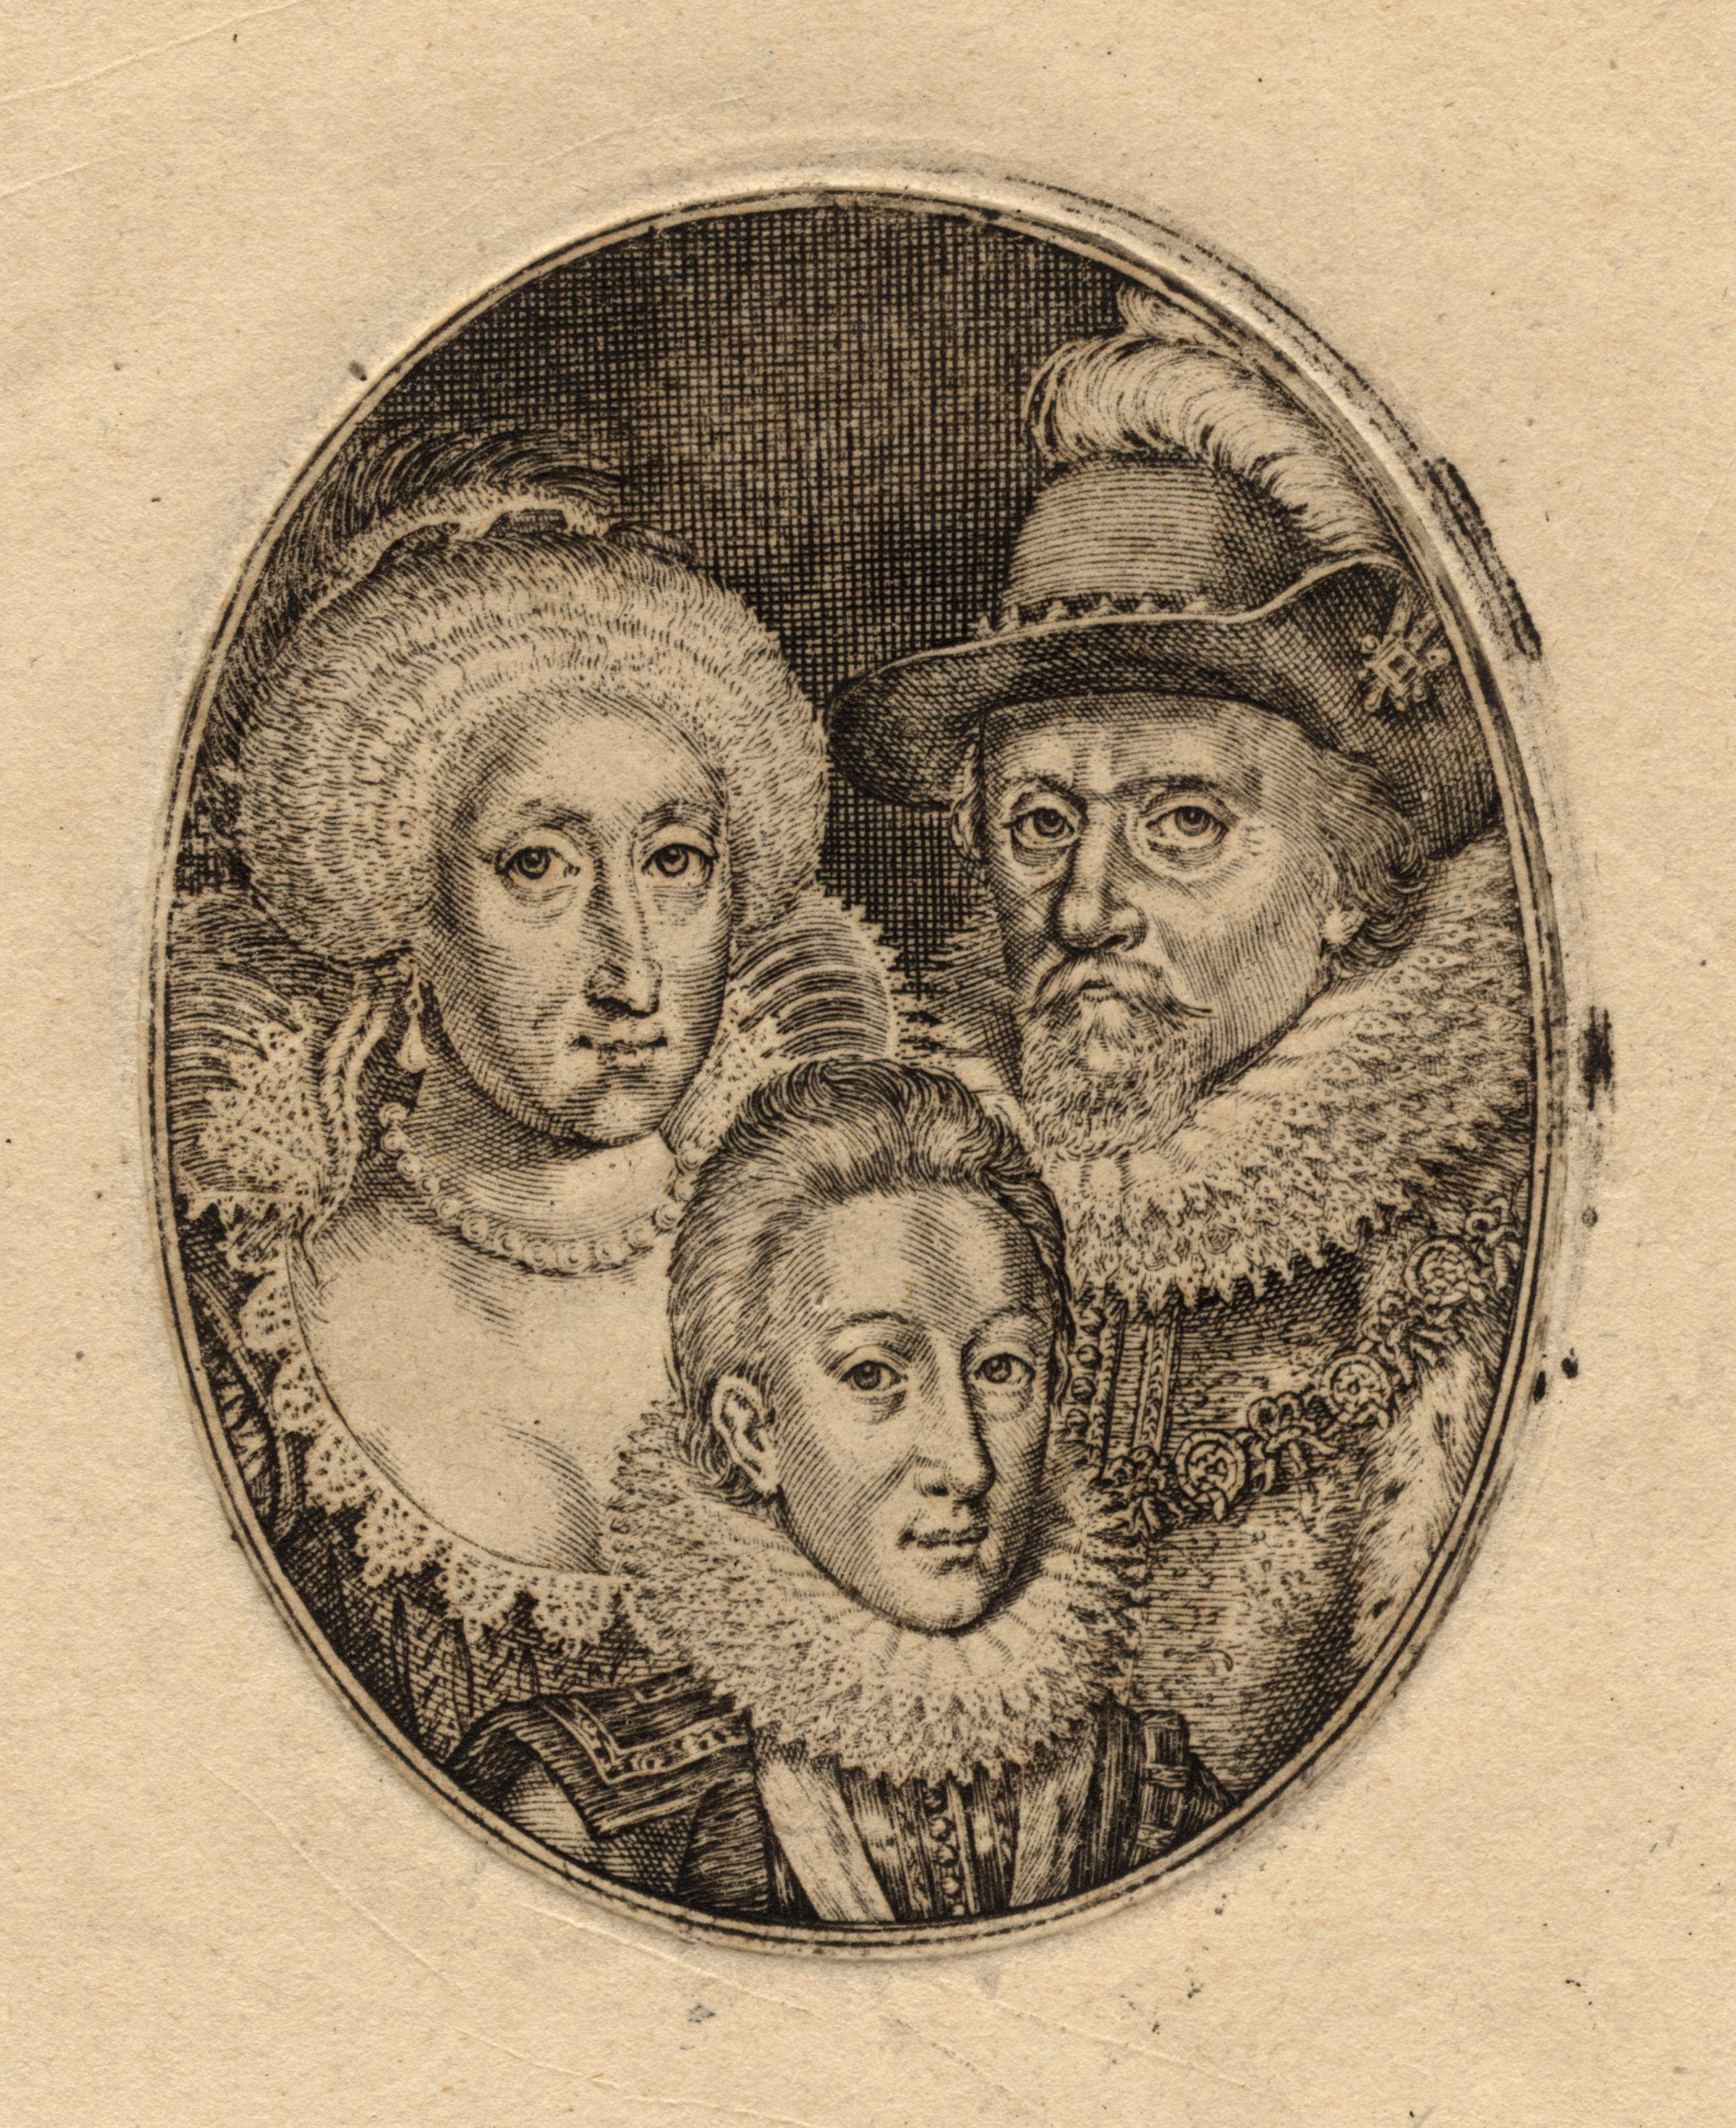 Engraving of Anne of Denmark, Charles I (in boyhood), and James VI and I by Simon van de Passe. Image courtesy of the National Portrait Gallery (UK).